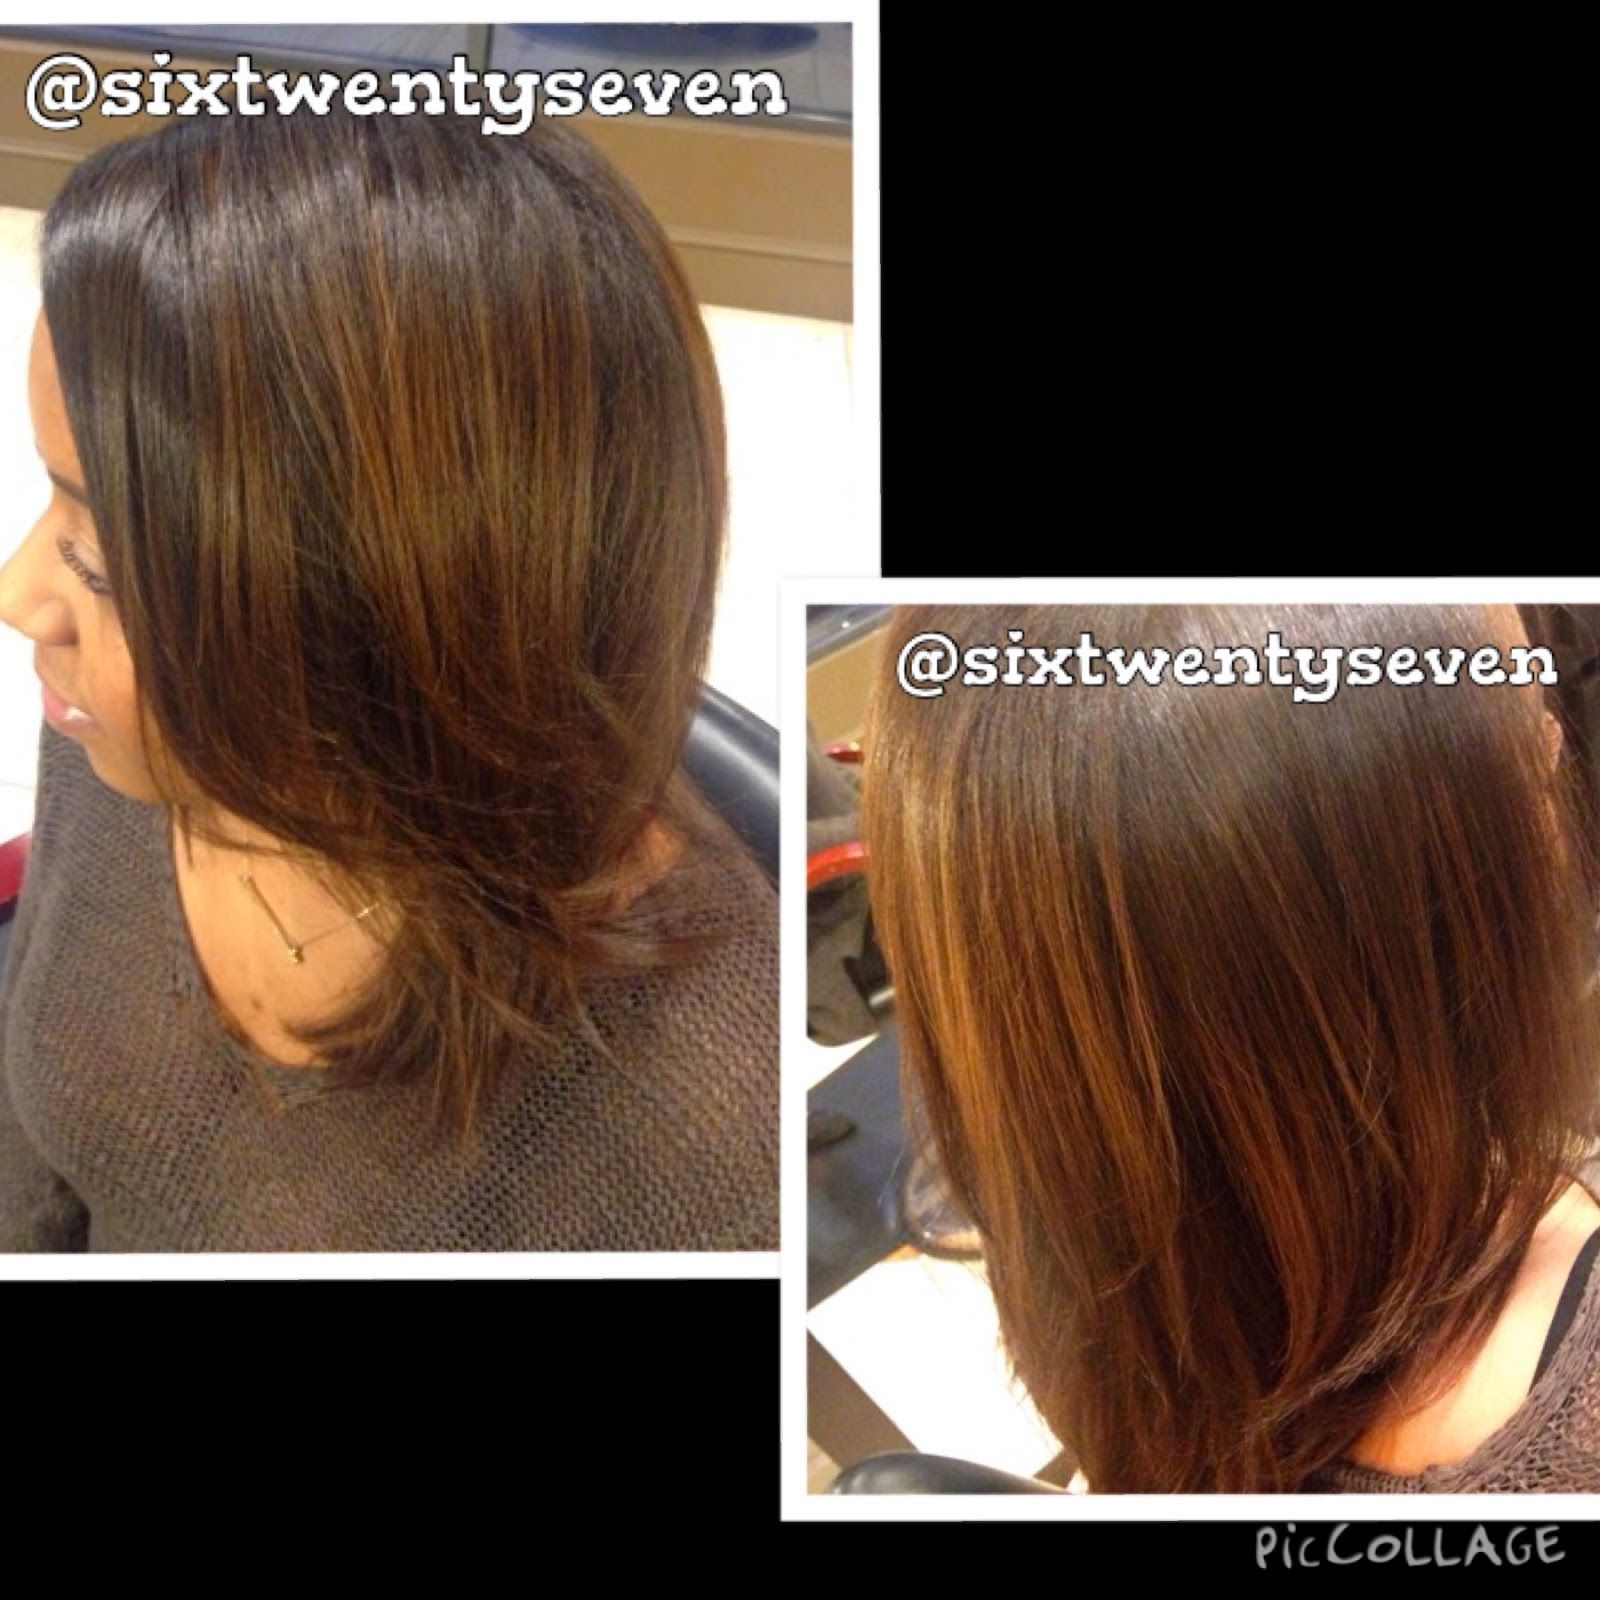 Six Twenty Seven: Balayage results on Natural, African-American Hair #africanamericanhair